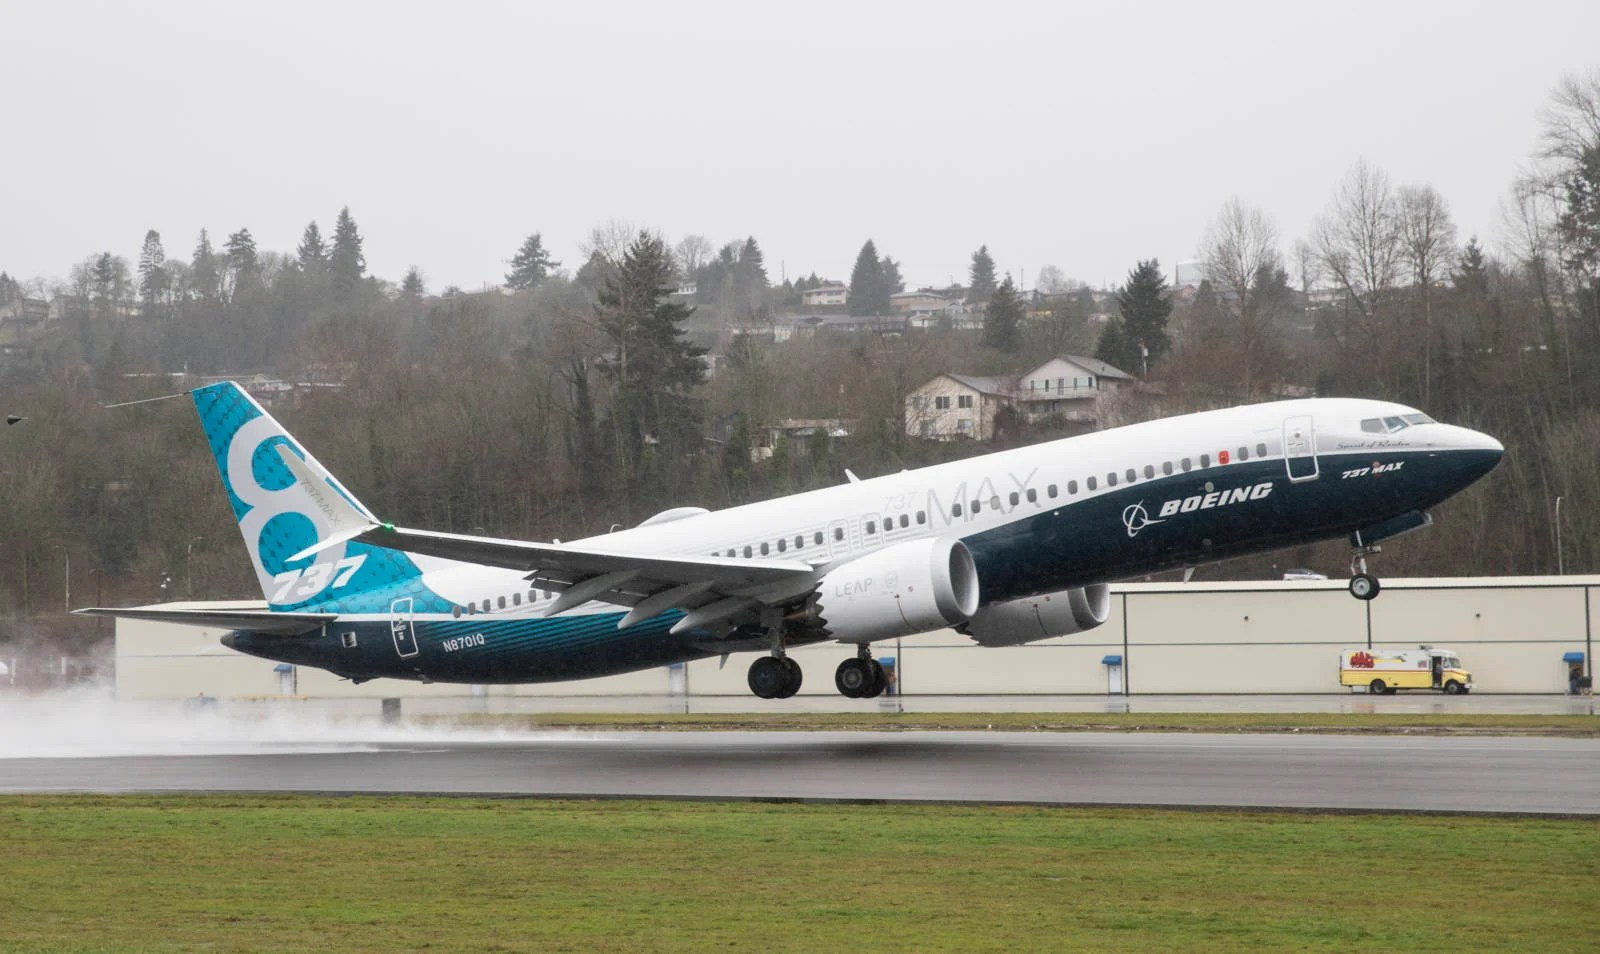 Both Crashed 737 MAX 8 Jets Lacked 2 Safety Features; Boeing Charged Extra for Them